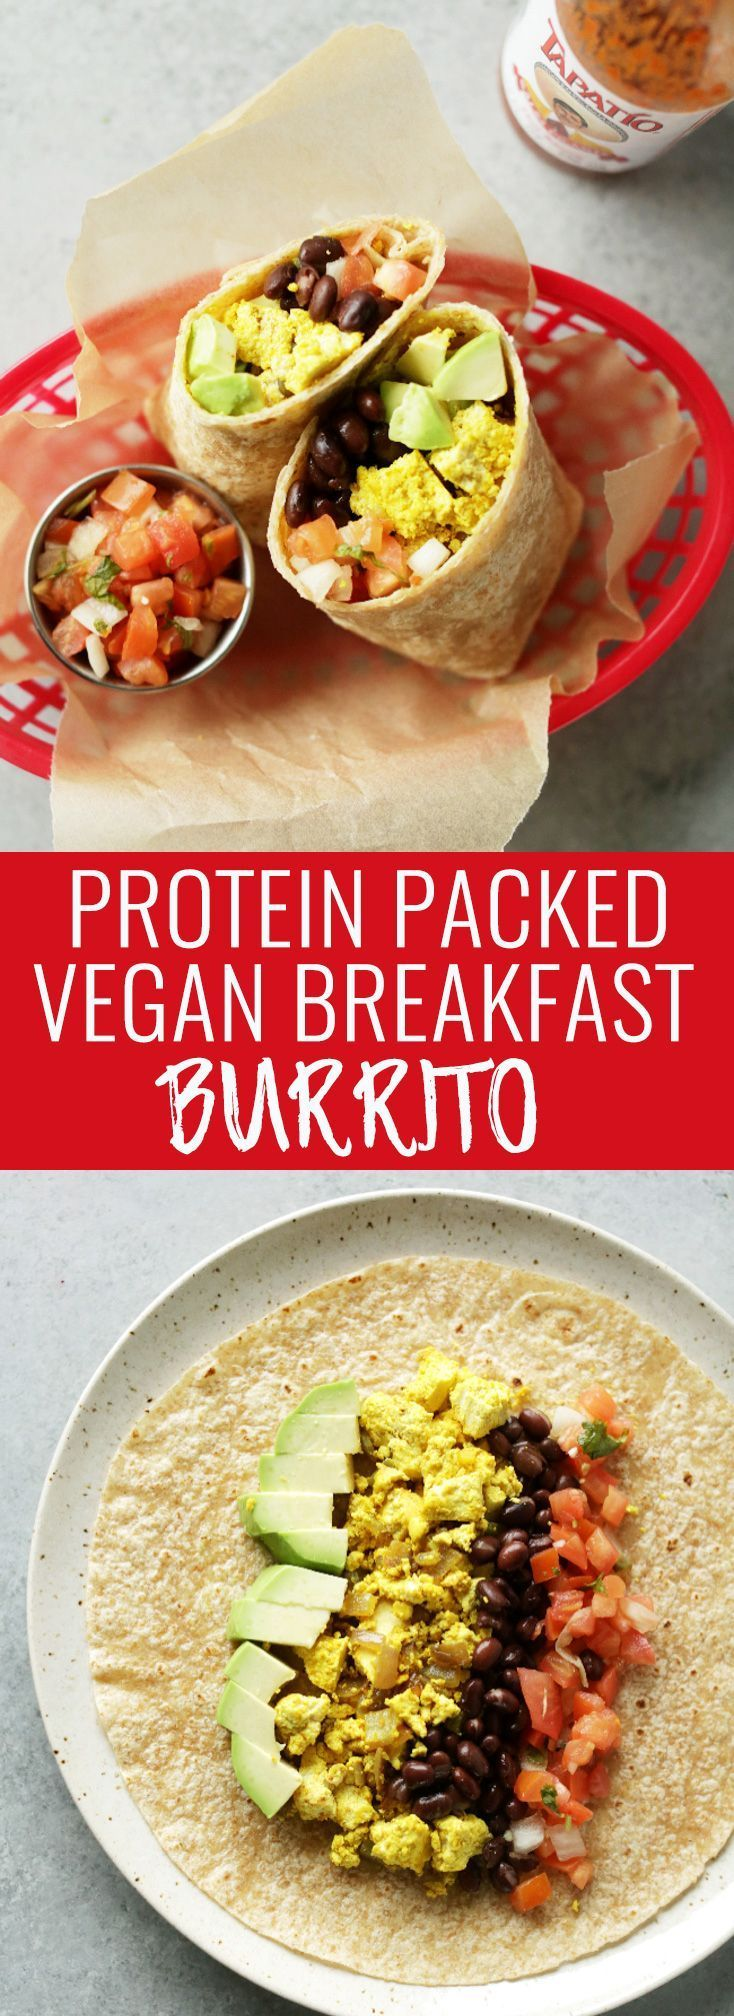 The ultimate protein packed (32 grams!) vegan breakfast burrito! 20-minutes to make, hearty and super tasty. Make ahead of time for an easy & healthy breakfast! Nutritionalfoodie.com